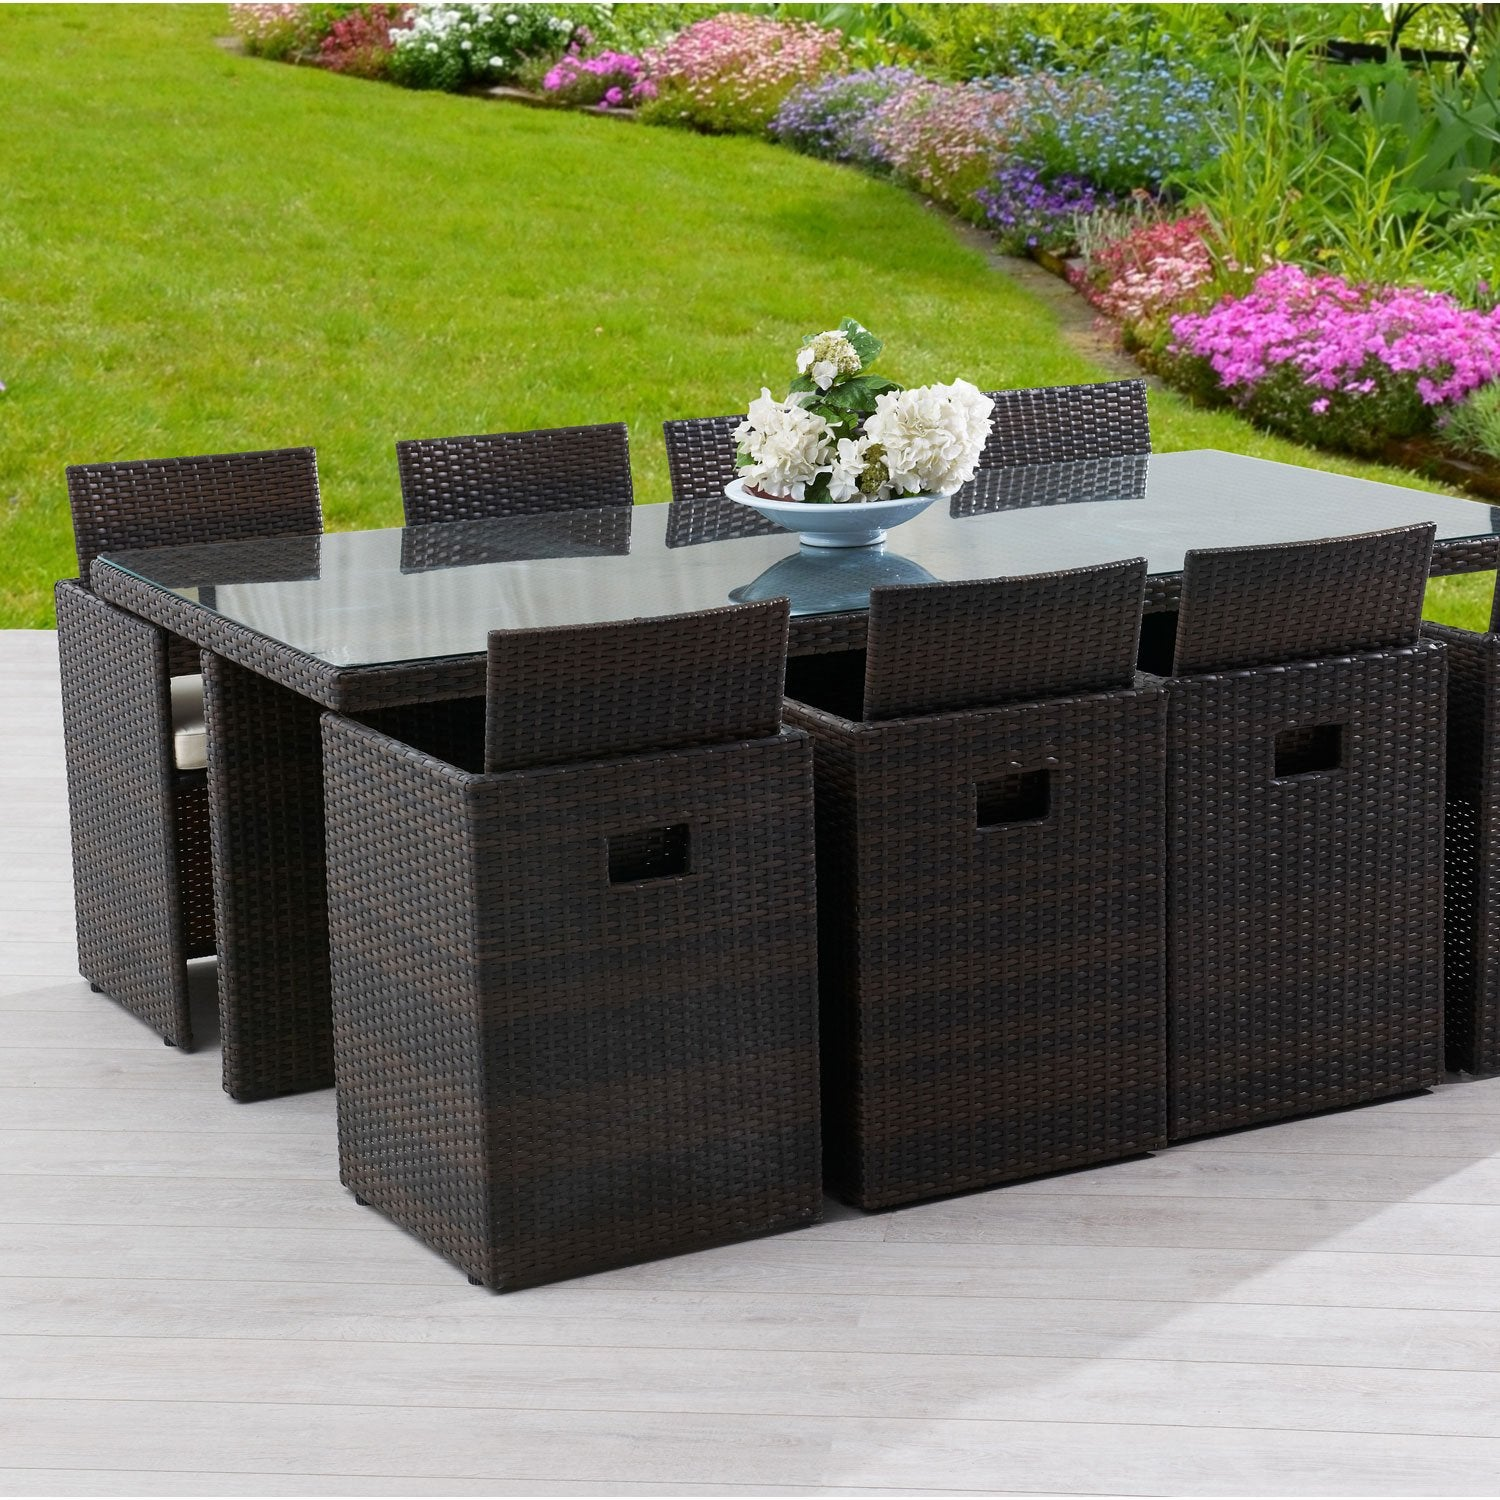 Salon de jardin encastrable r sine tress e marron 1 table - Salon de jardin table et chaise ...